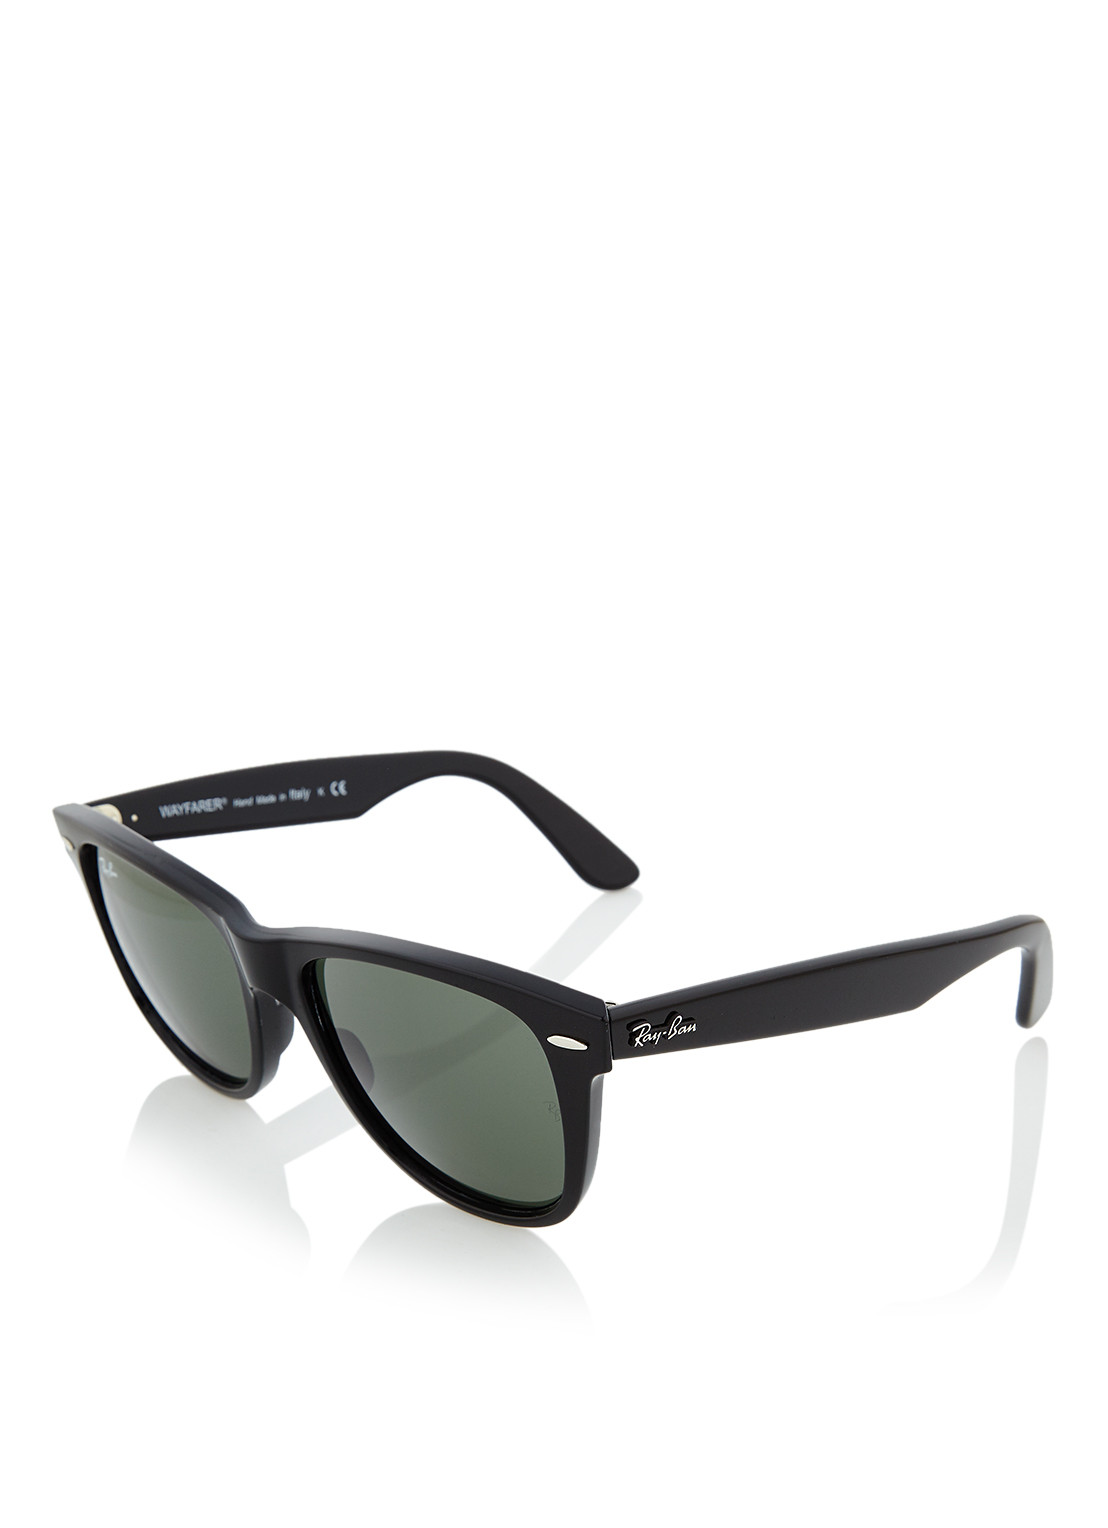 Ray Ban Zonnebril 0RB2140